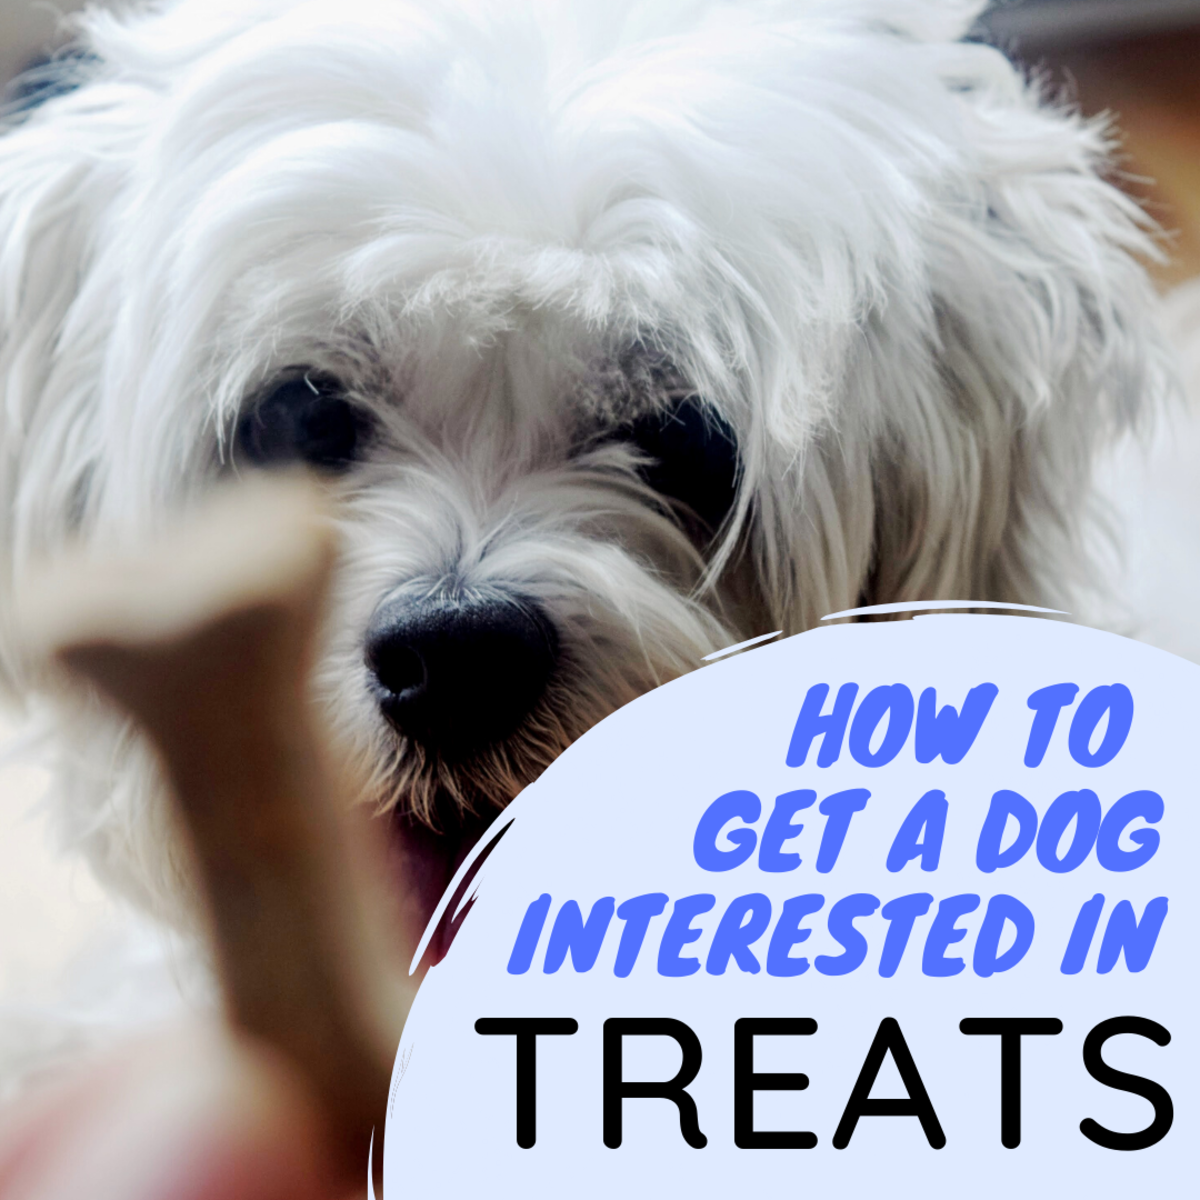 Why Won't My Dog Respond to Treats?